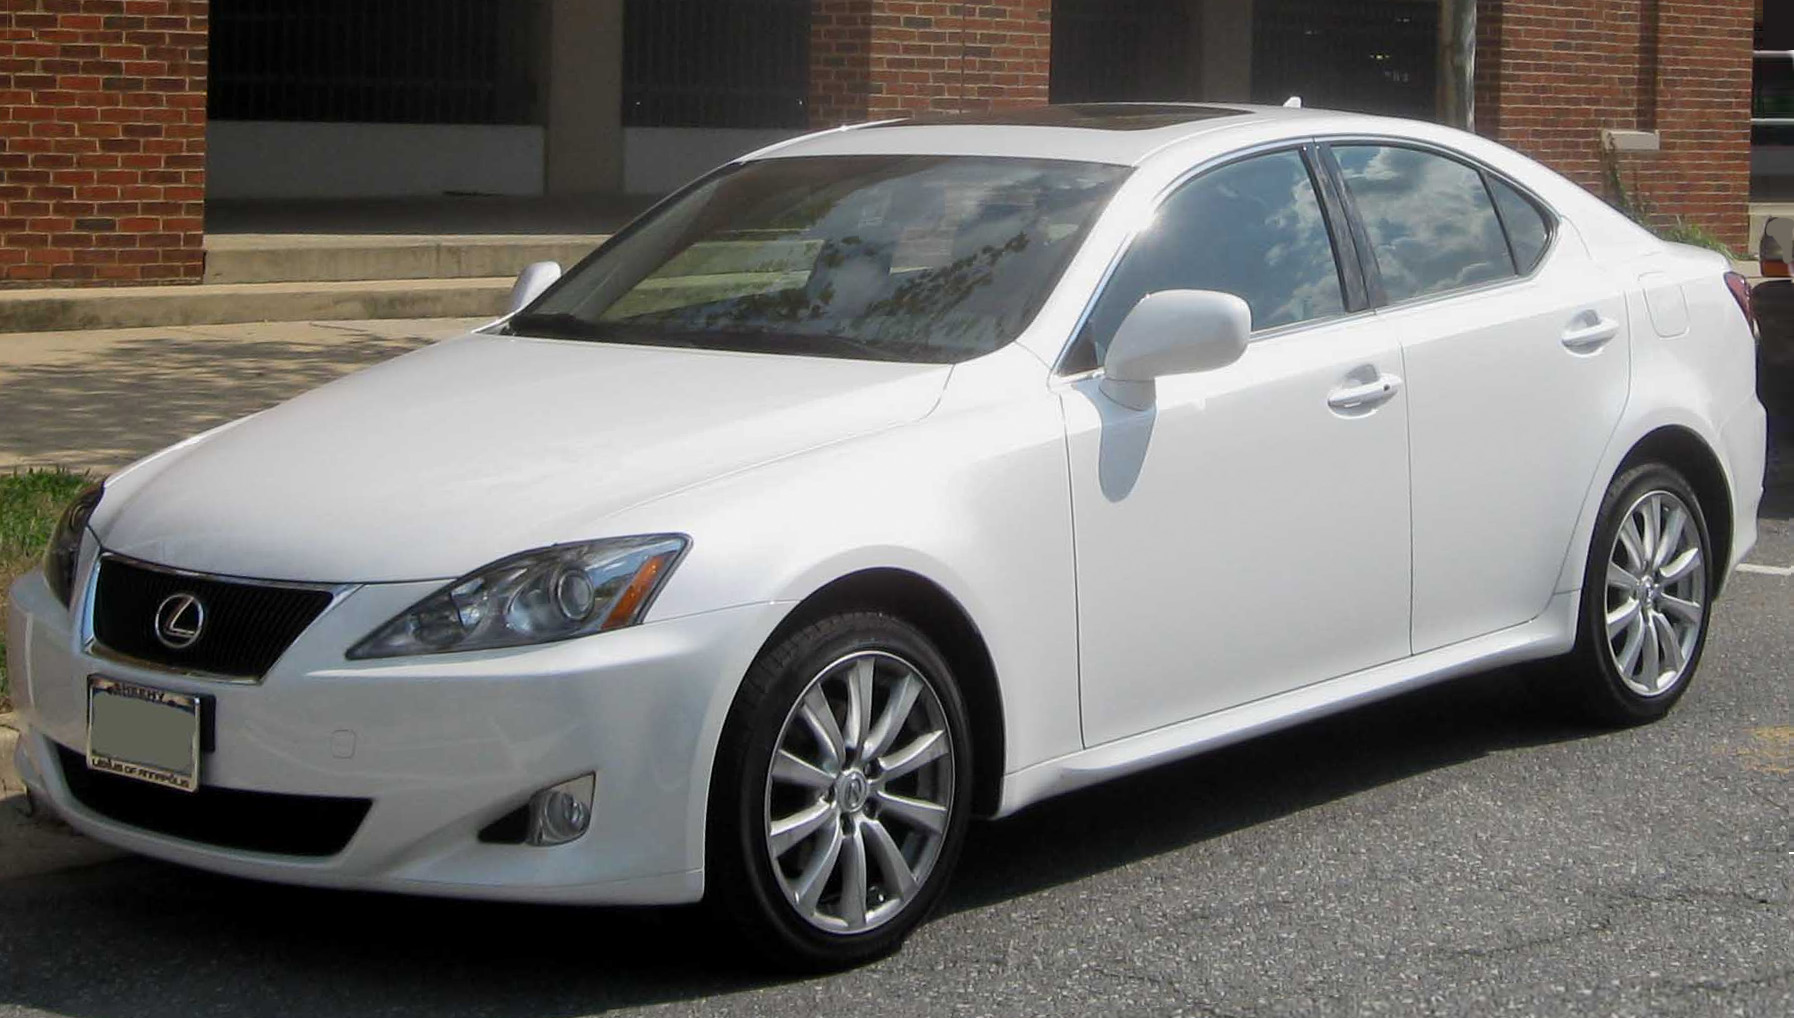 2008 Lexus Is 250 Information And Photos Momentcar